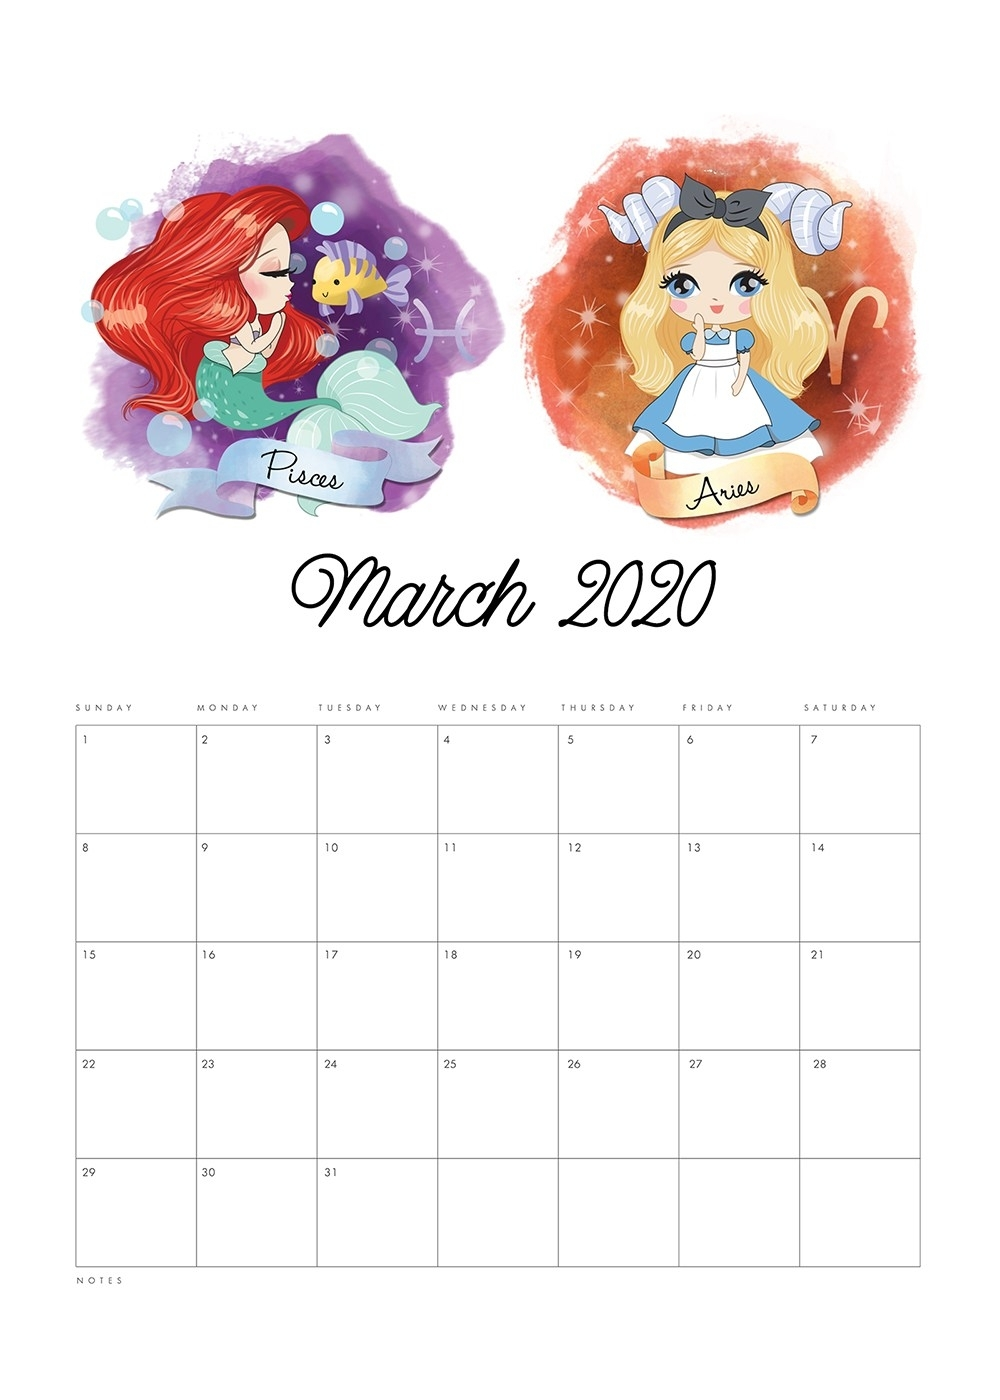 Free Printable 2020 Princess Zodiac Calendar - The Cottage